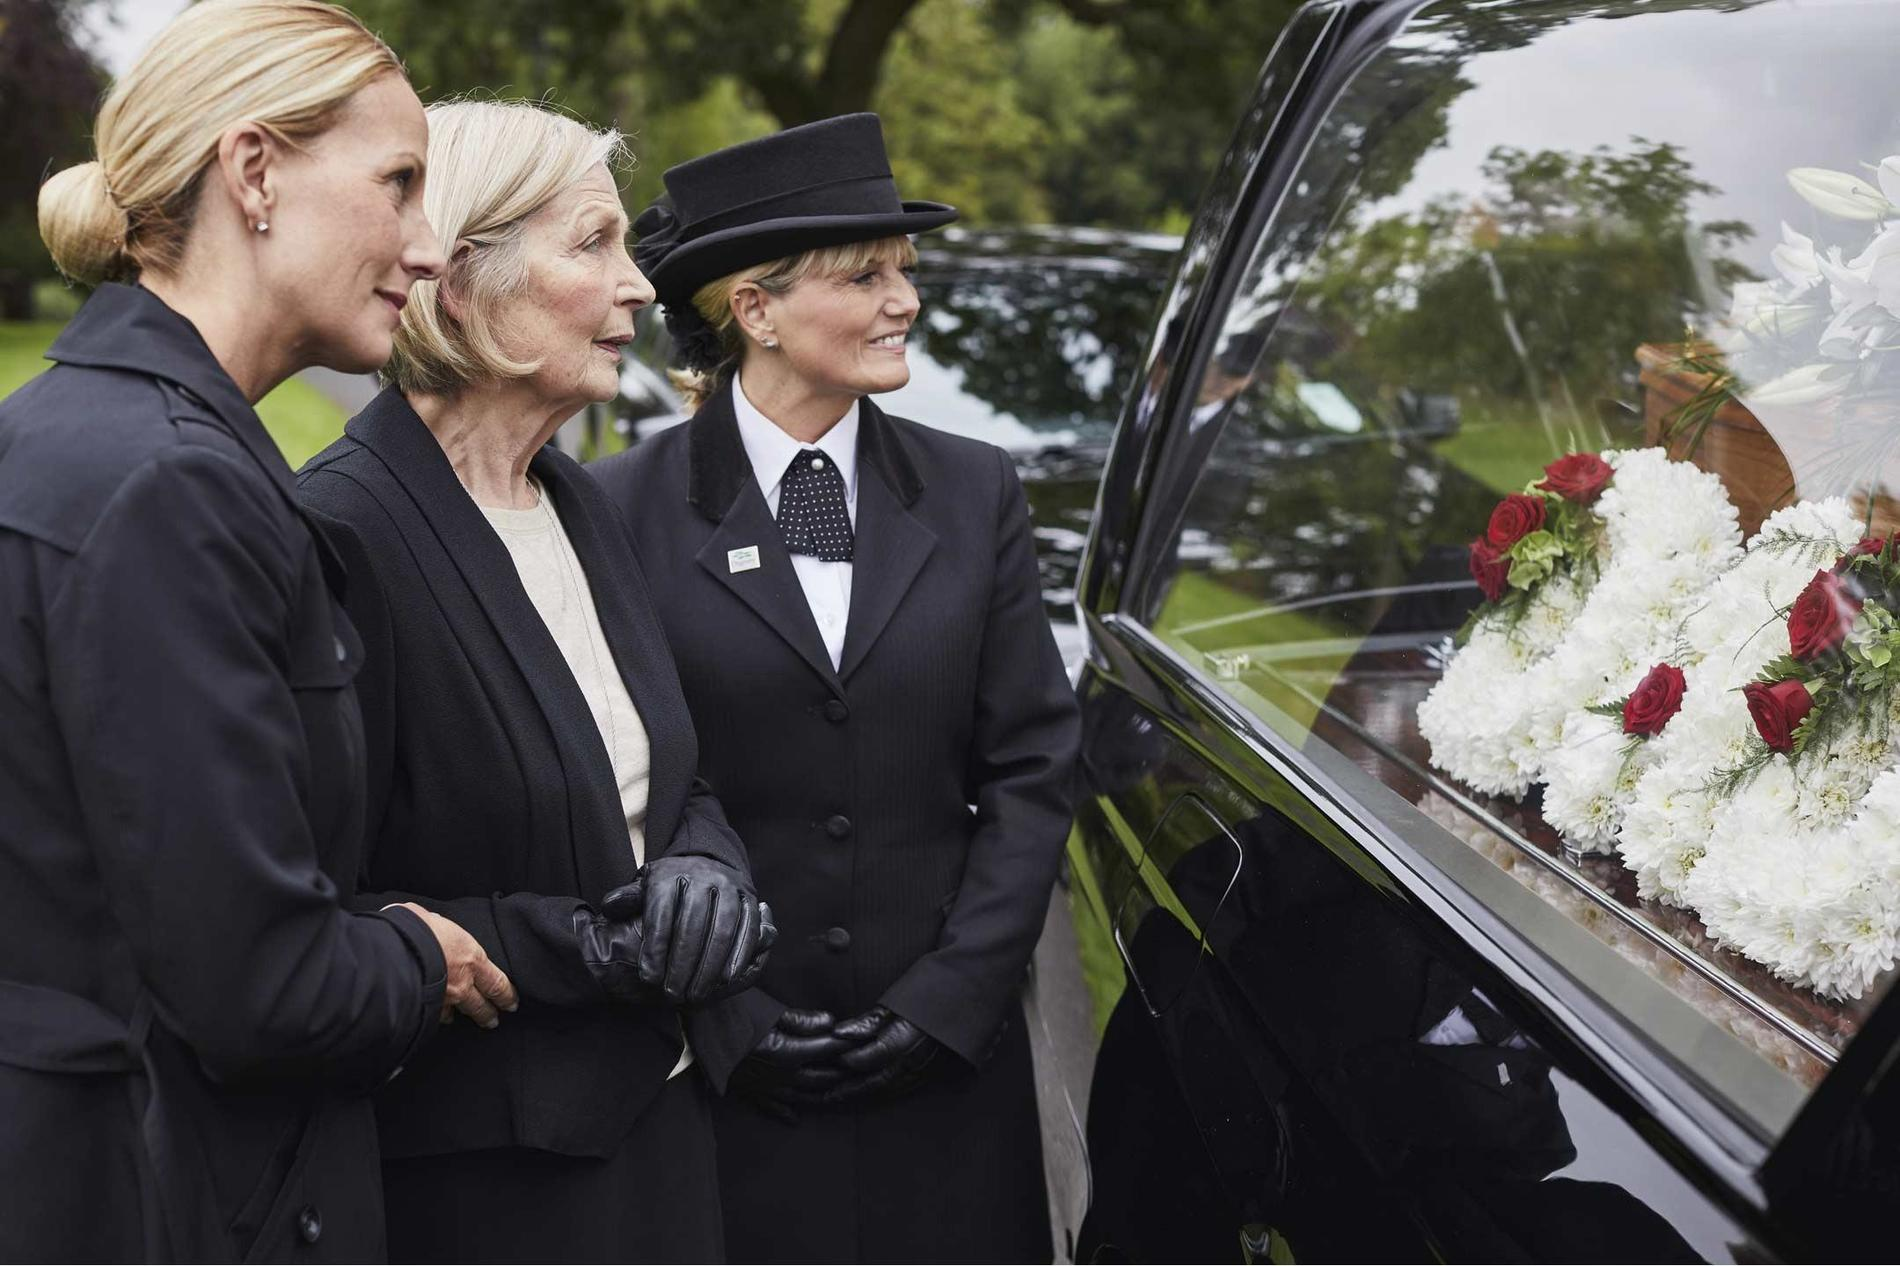 Funeral directors with two mourners at a full service funeral | Dignity Funerals